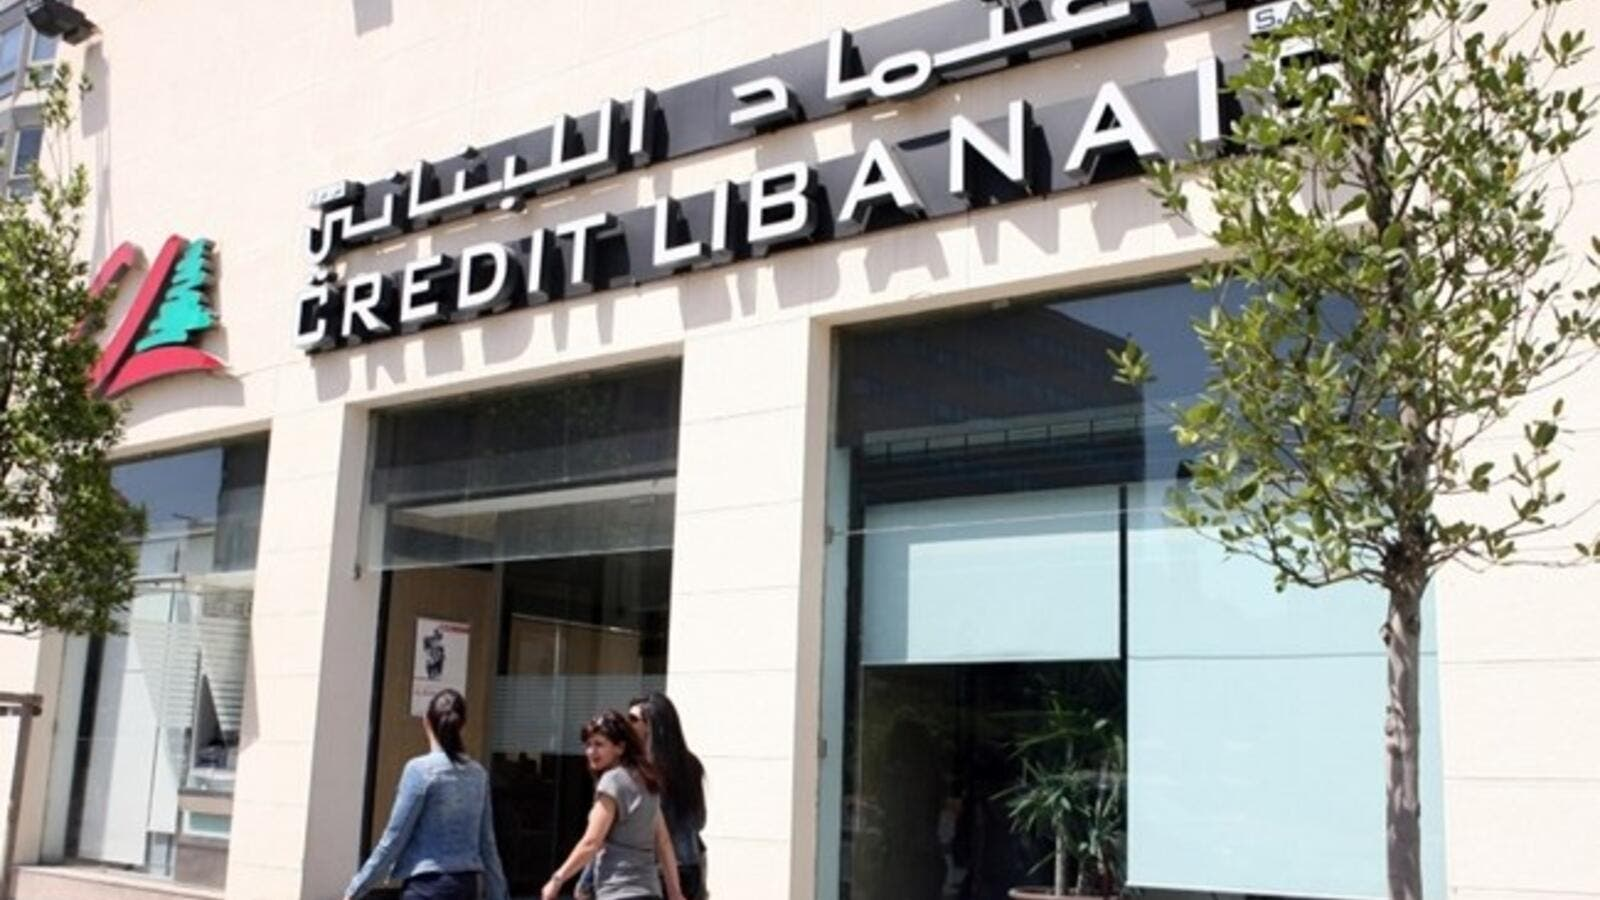 Fraud suit against Credit Libanais and two banks claims $150 million